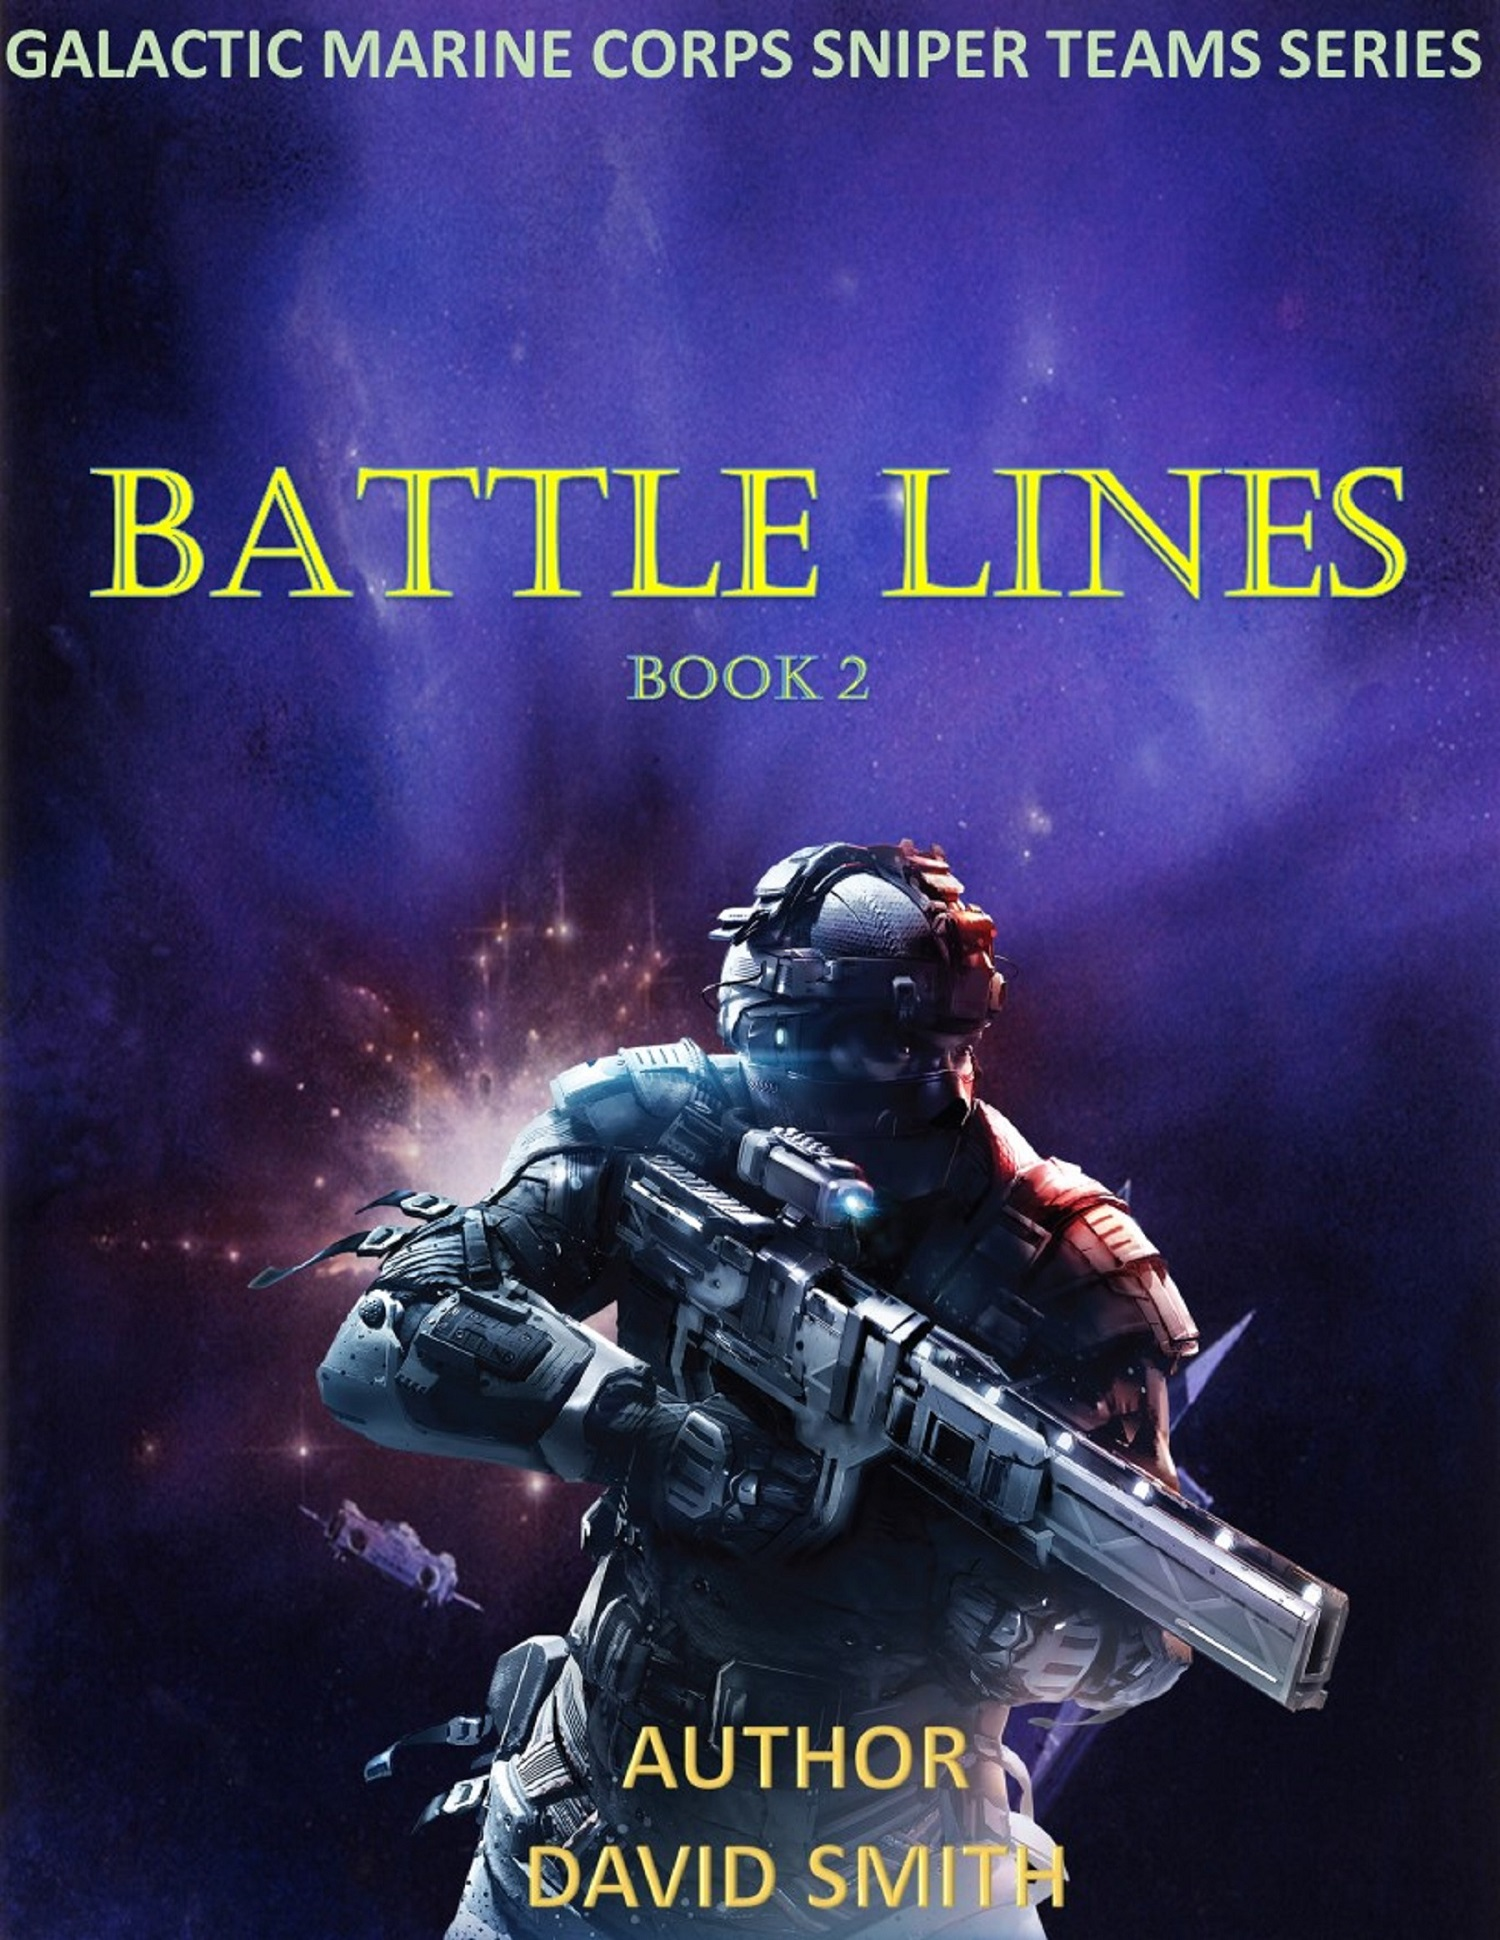 Galactic Marine Corps Sniper Teams Battle Lines An Ebook By David Smith